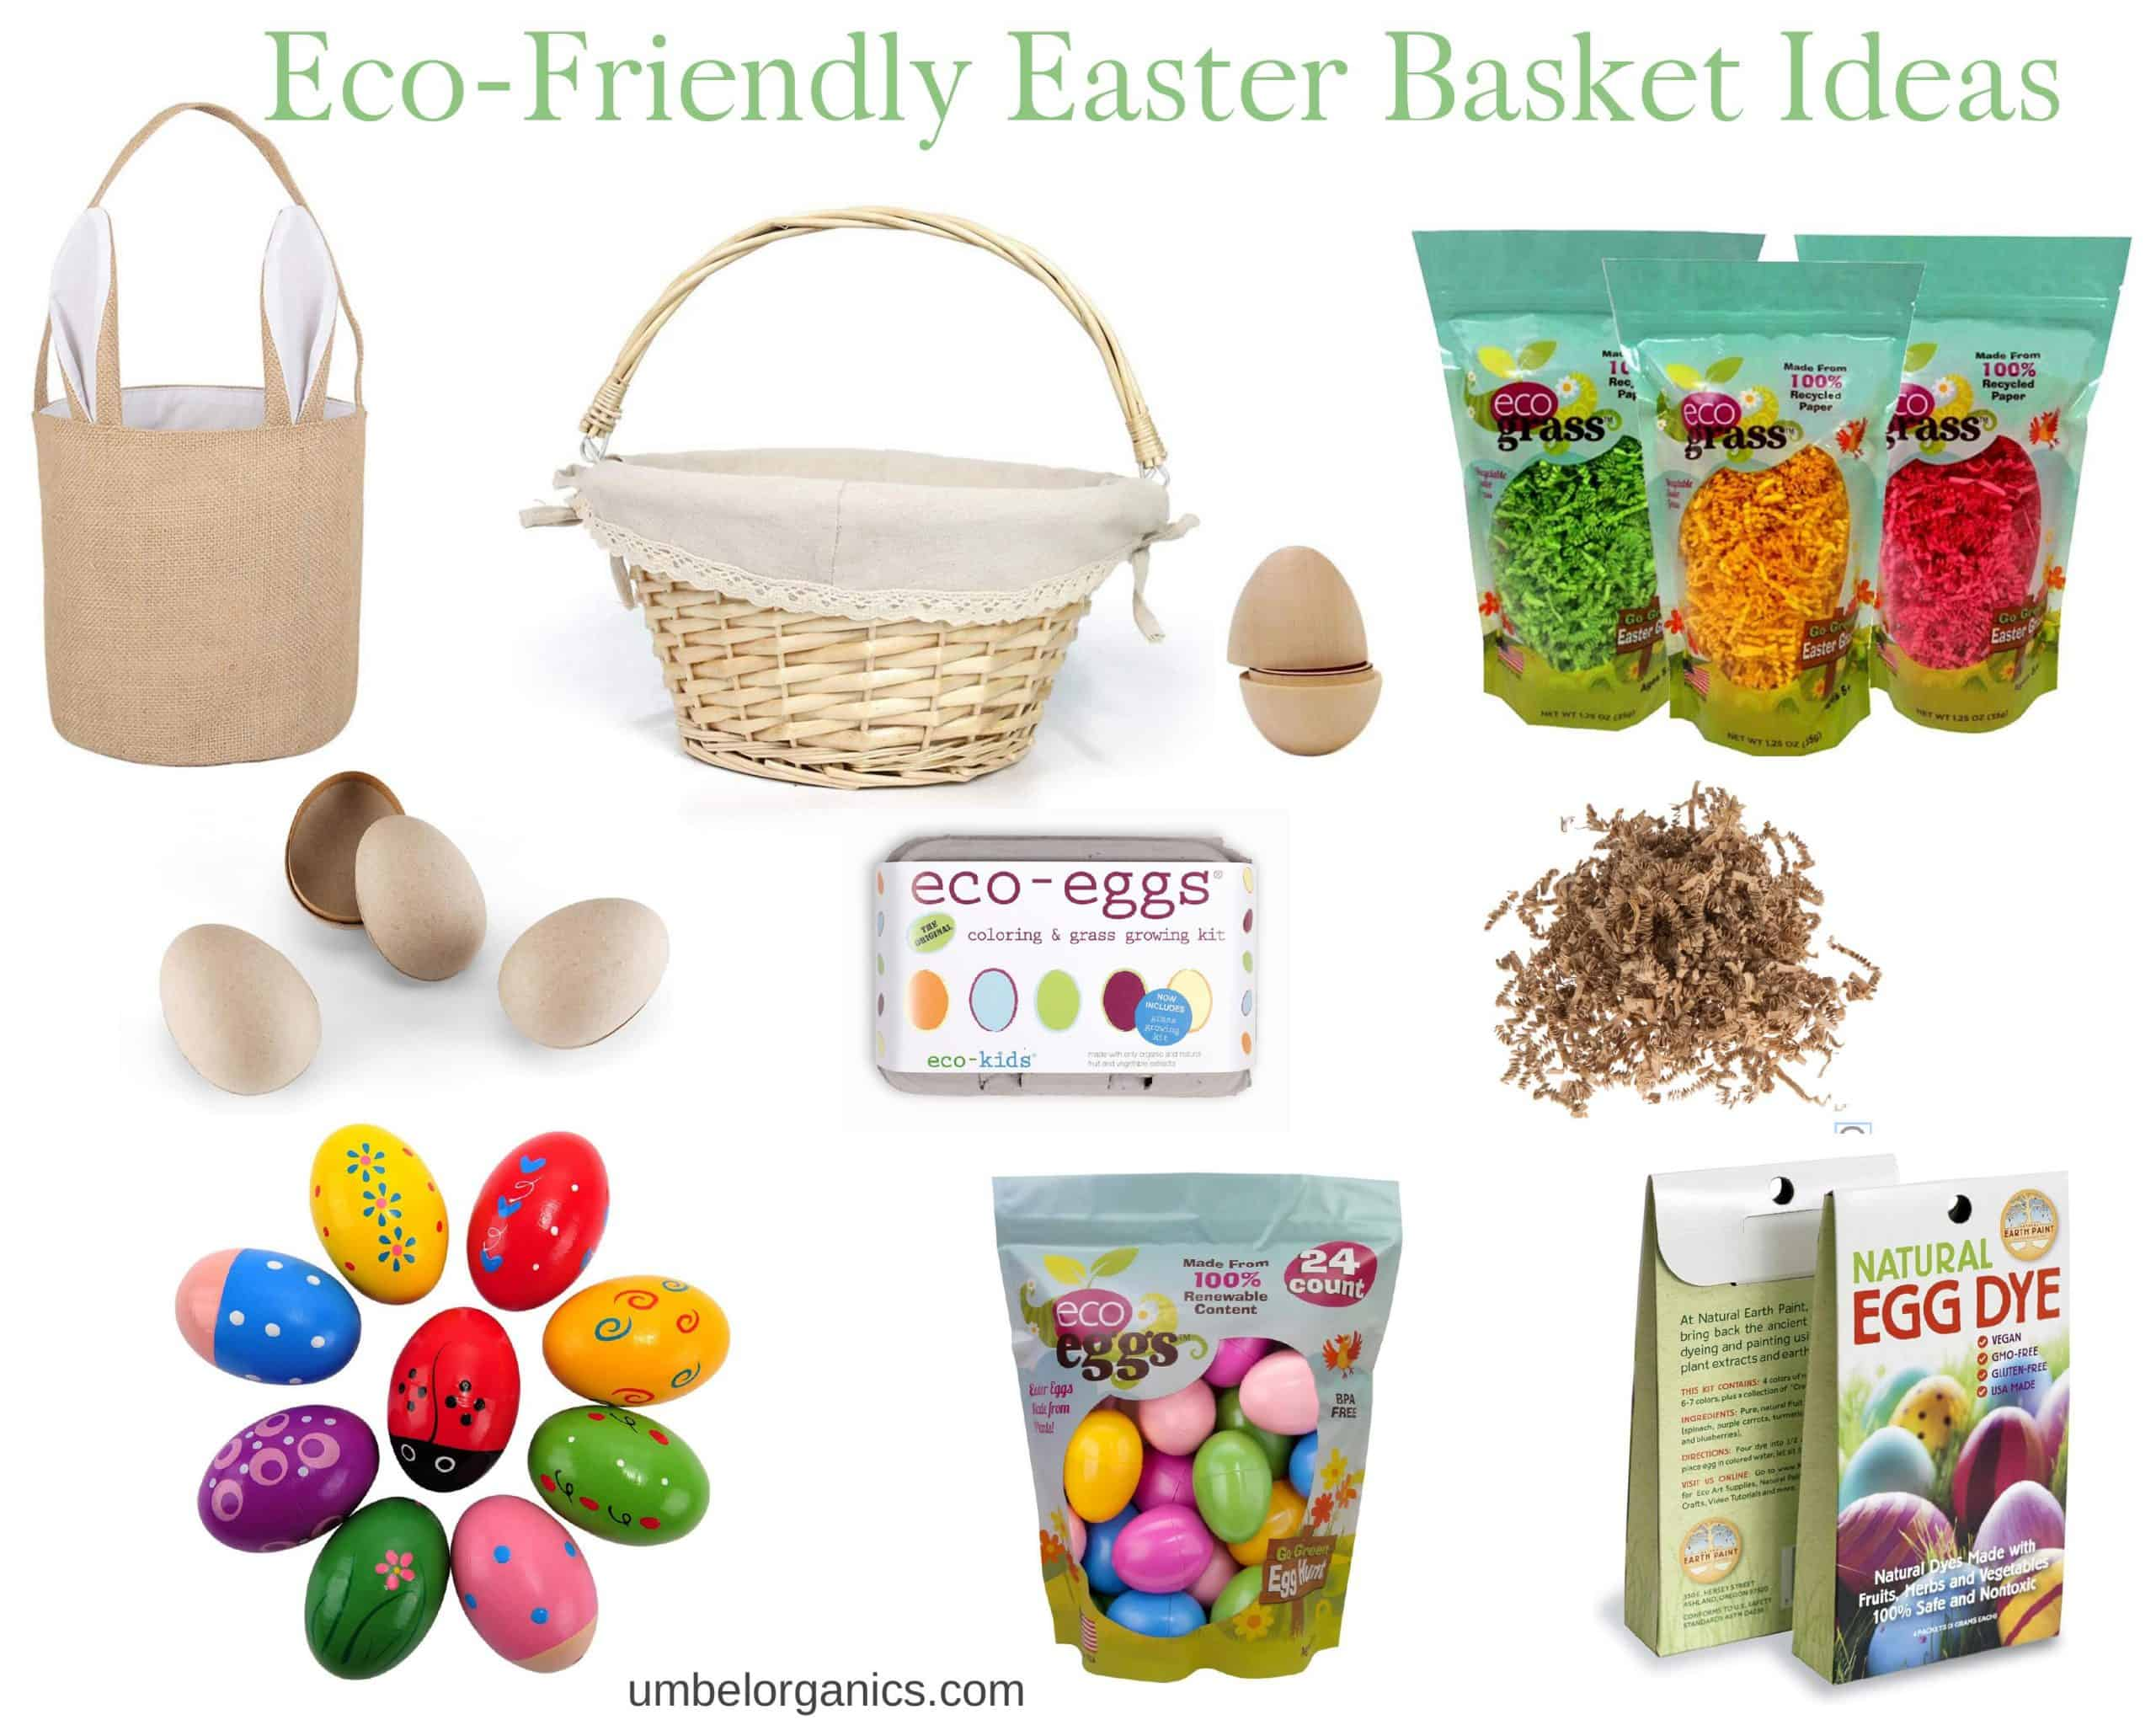 eco-friendly Easter basket ideas